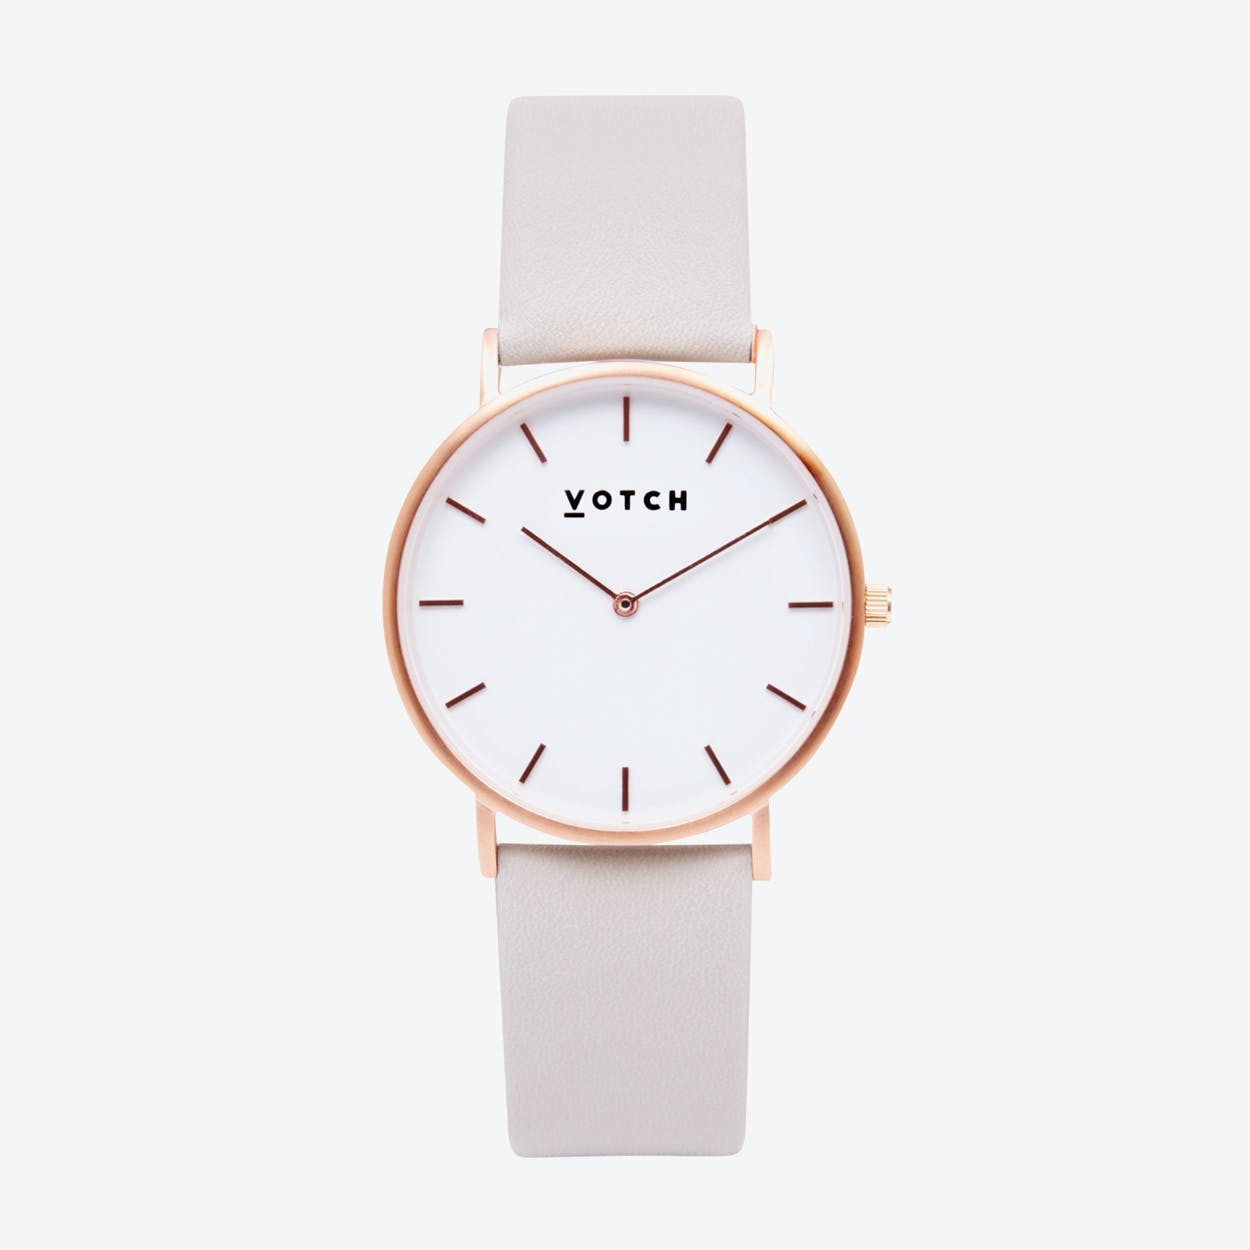 Classic Watch in Rose Gold with White Face and Light Grey Vegan Leather Strap, 38mm